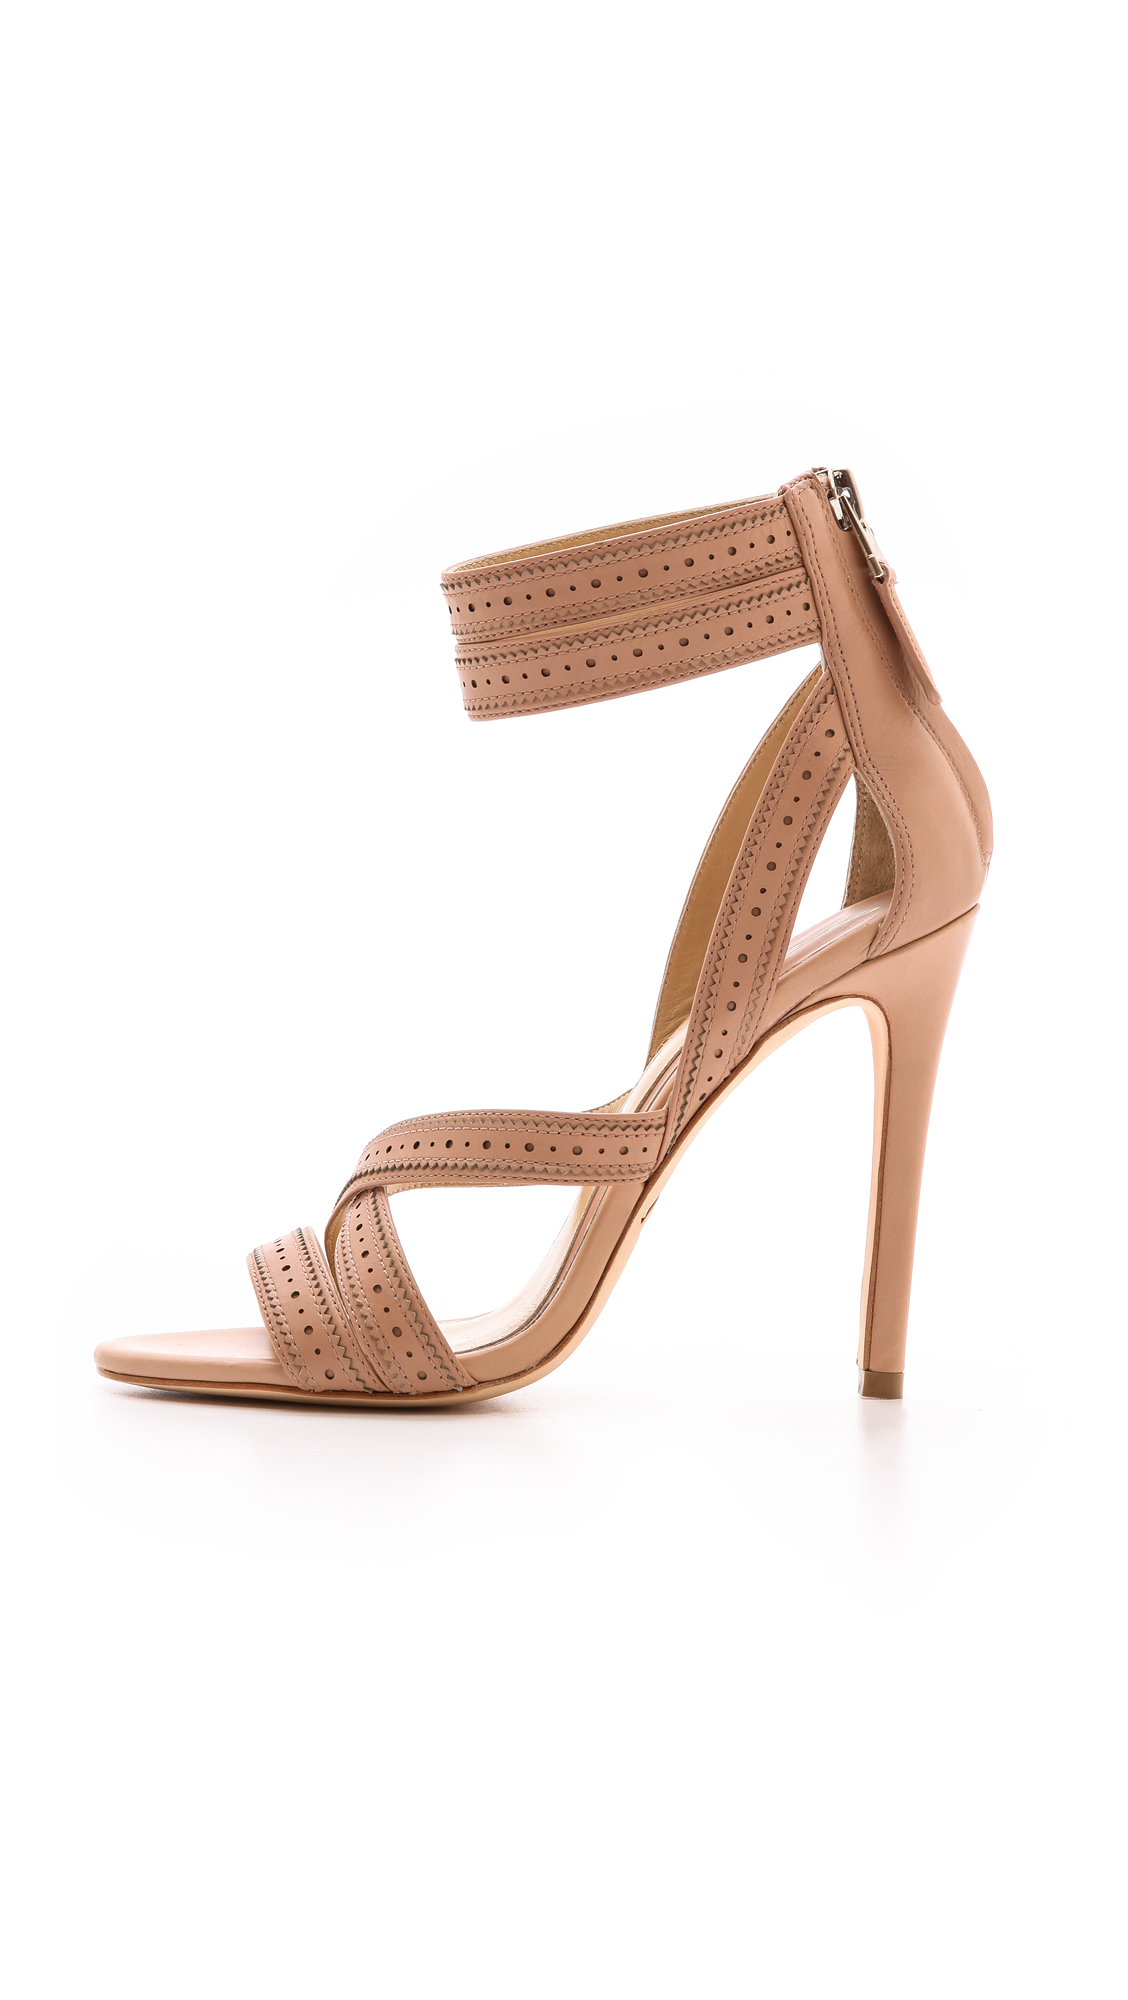 9c33cbc4386 Brian Atwood Pink Sandals Related Keywords & Suggestions - Brian ...